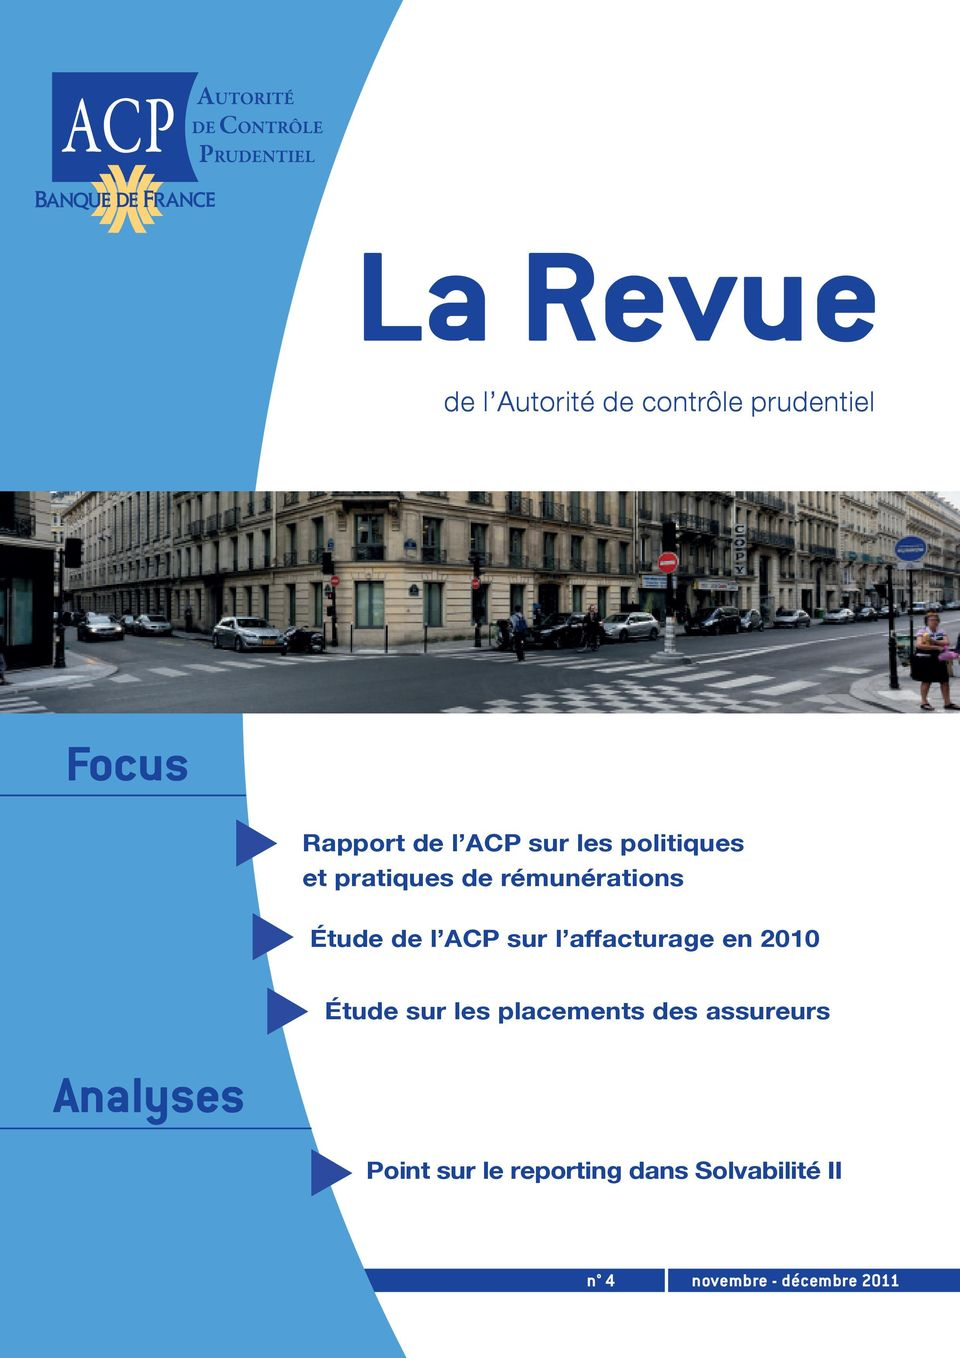 affacturage en 2010 Étude sur les placements des assureurs Analyses